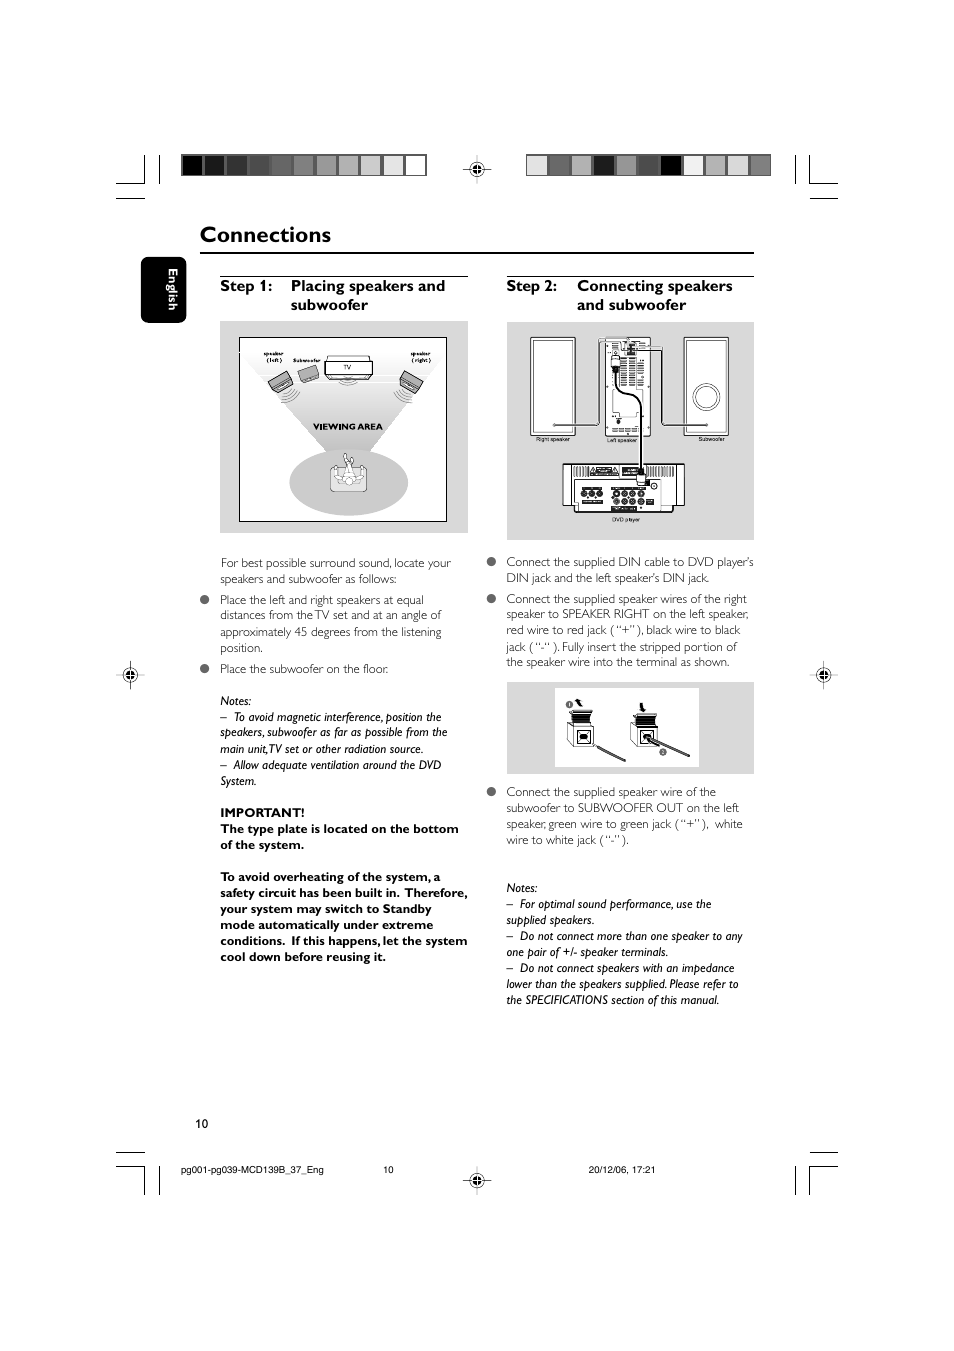 Connections Philips Dvd Micro Theater Mcd139b User Manual Page Surround Sound What To Expect When Wiring Your Home For The 21st 10 40